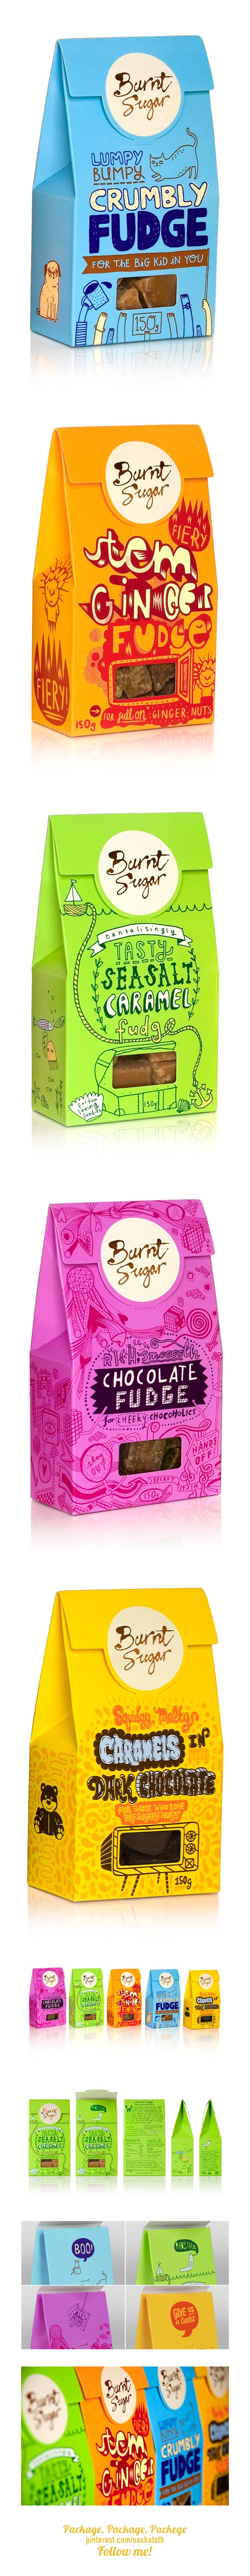 Fudge #packaging